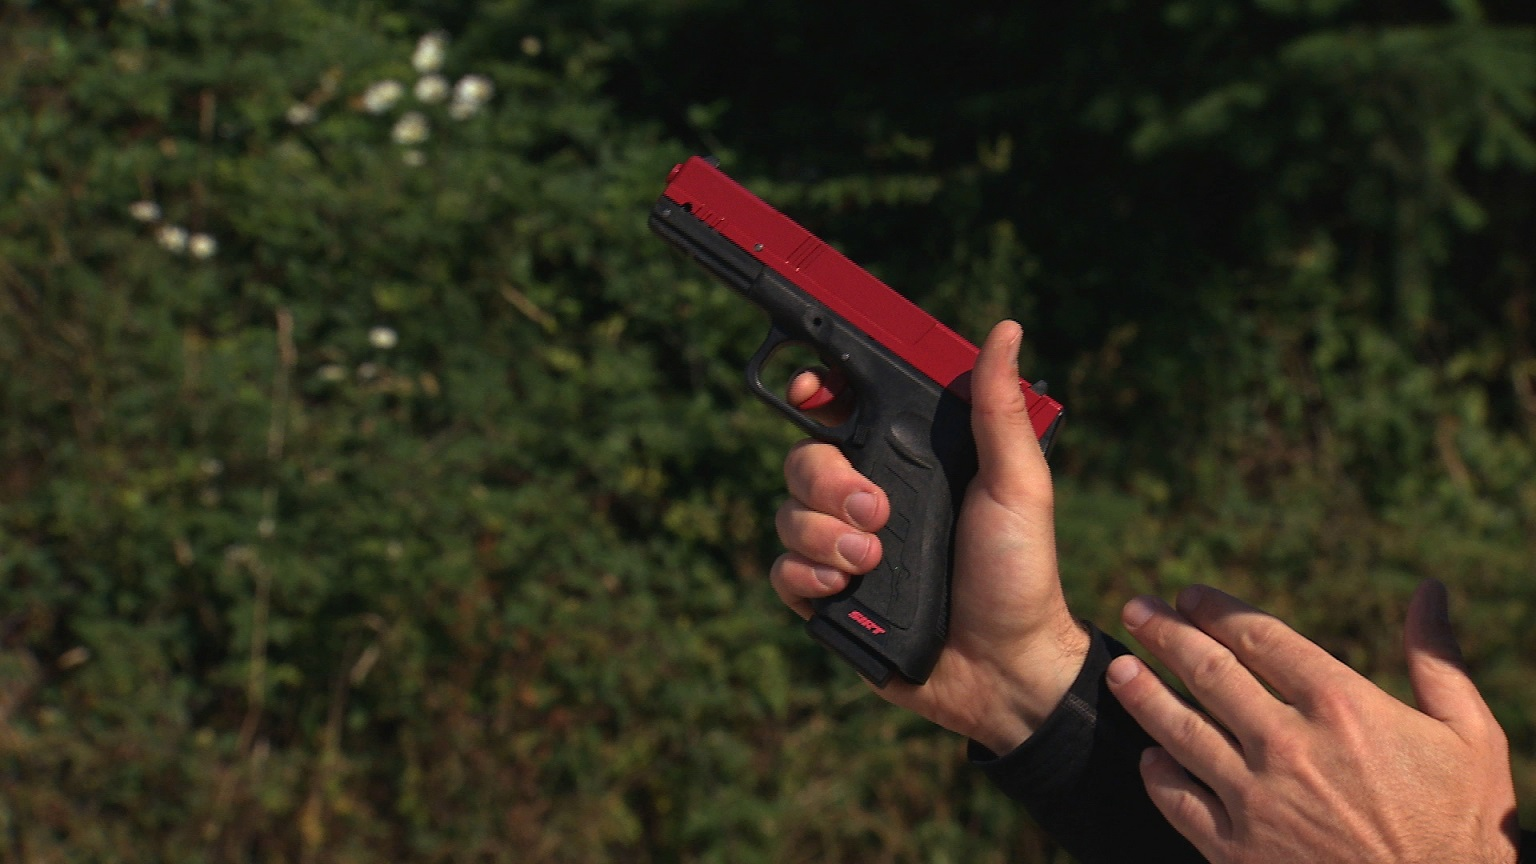 Self-Defense Video on Trigger Control